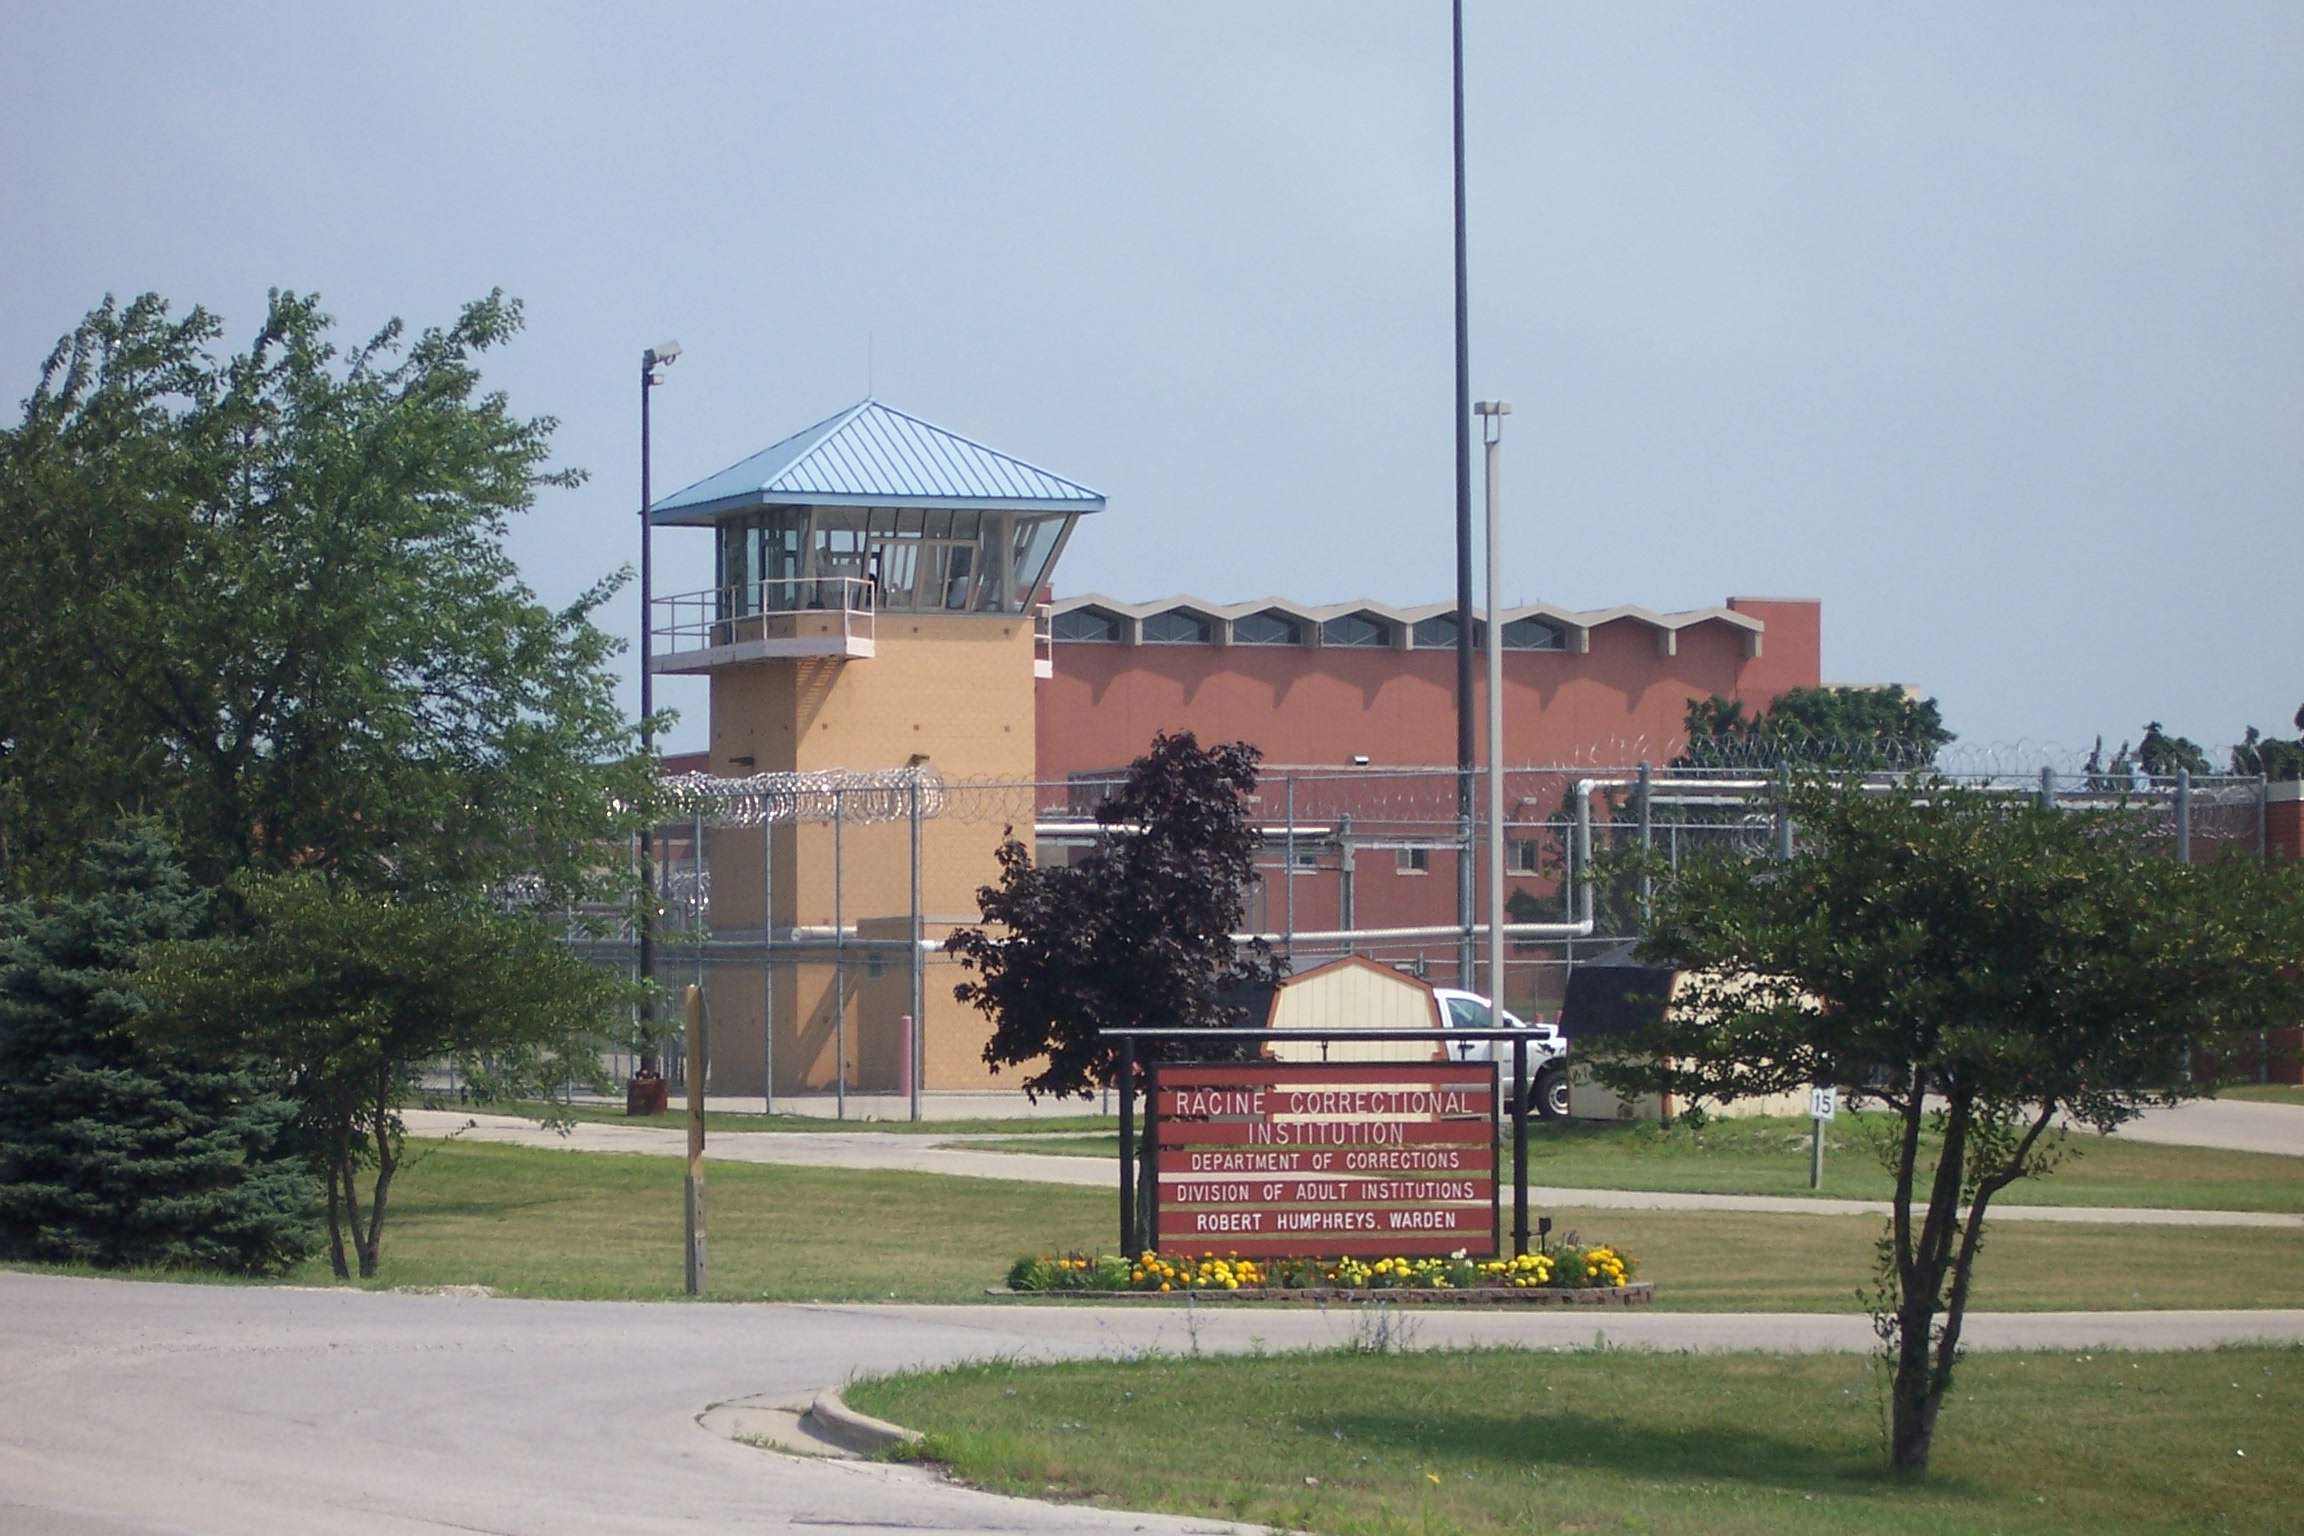 List of Wisconsin state prisons - Wikipedia